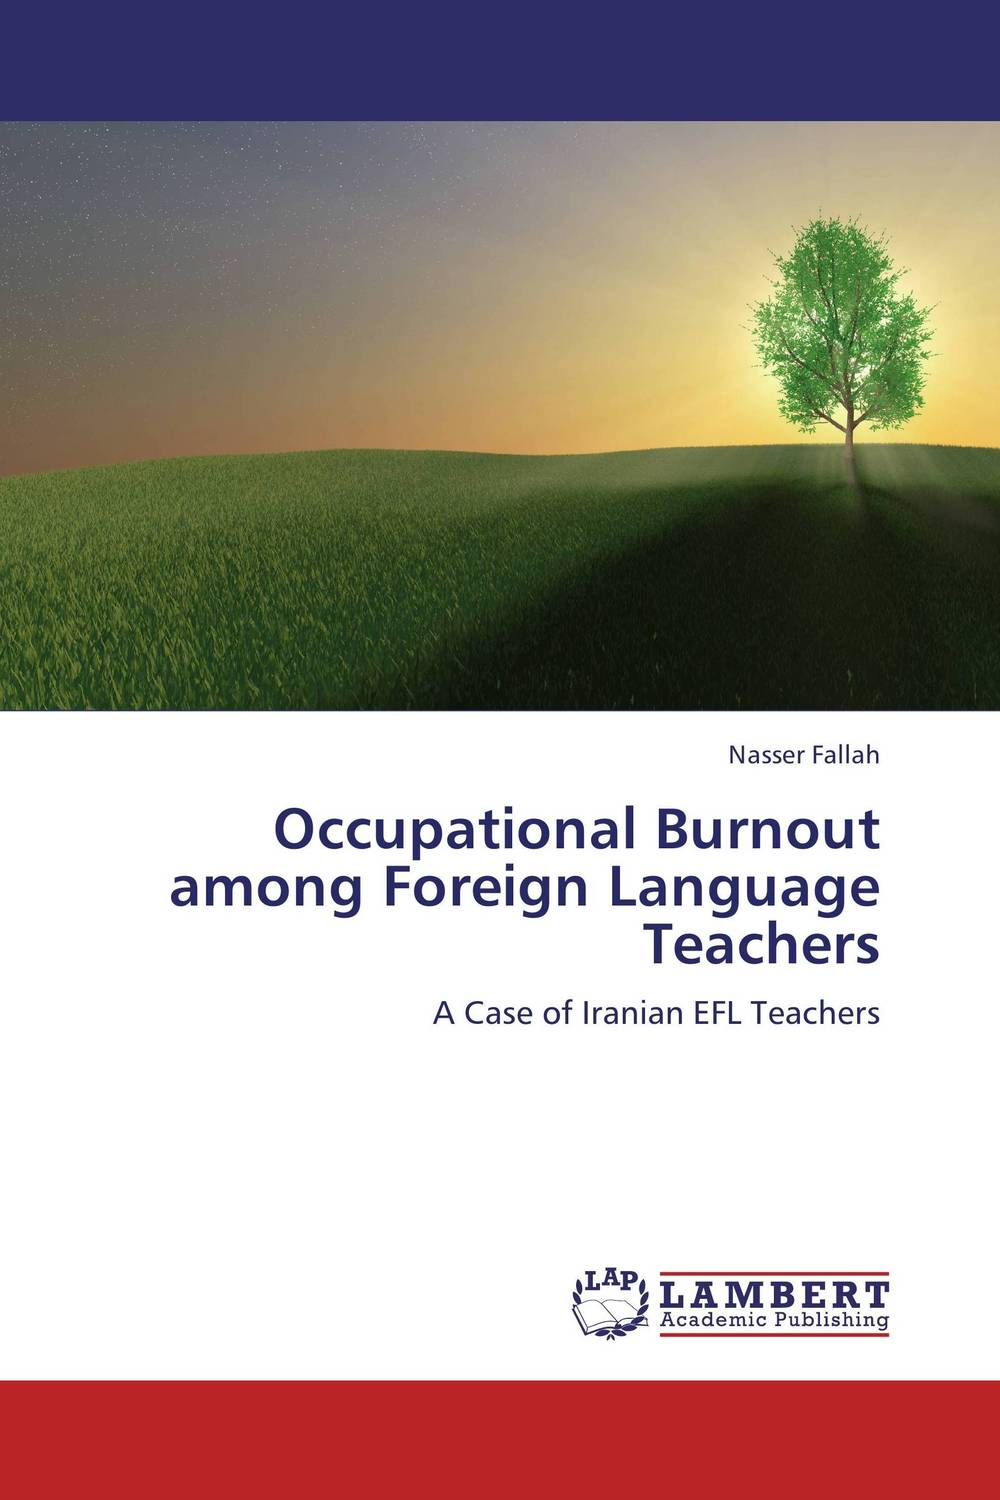 Occupational Burnout among Foreign Language Teachers burnout ways of coping and job satisfaction among doctors